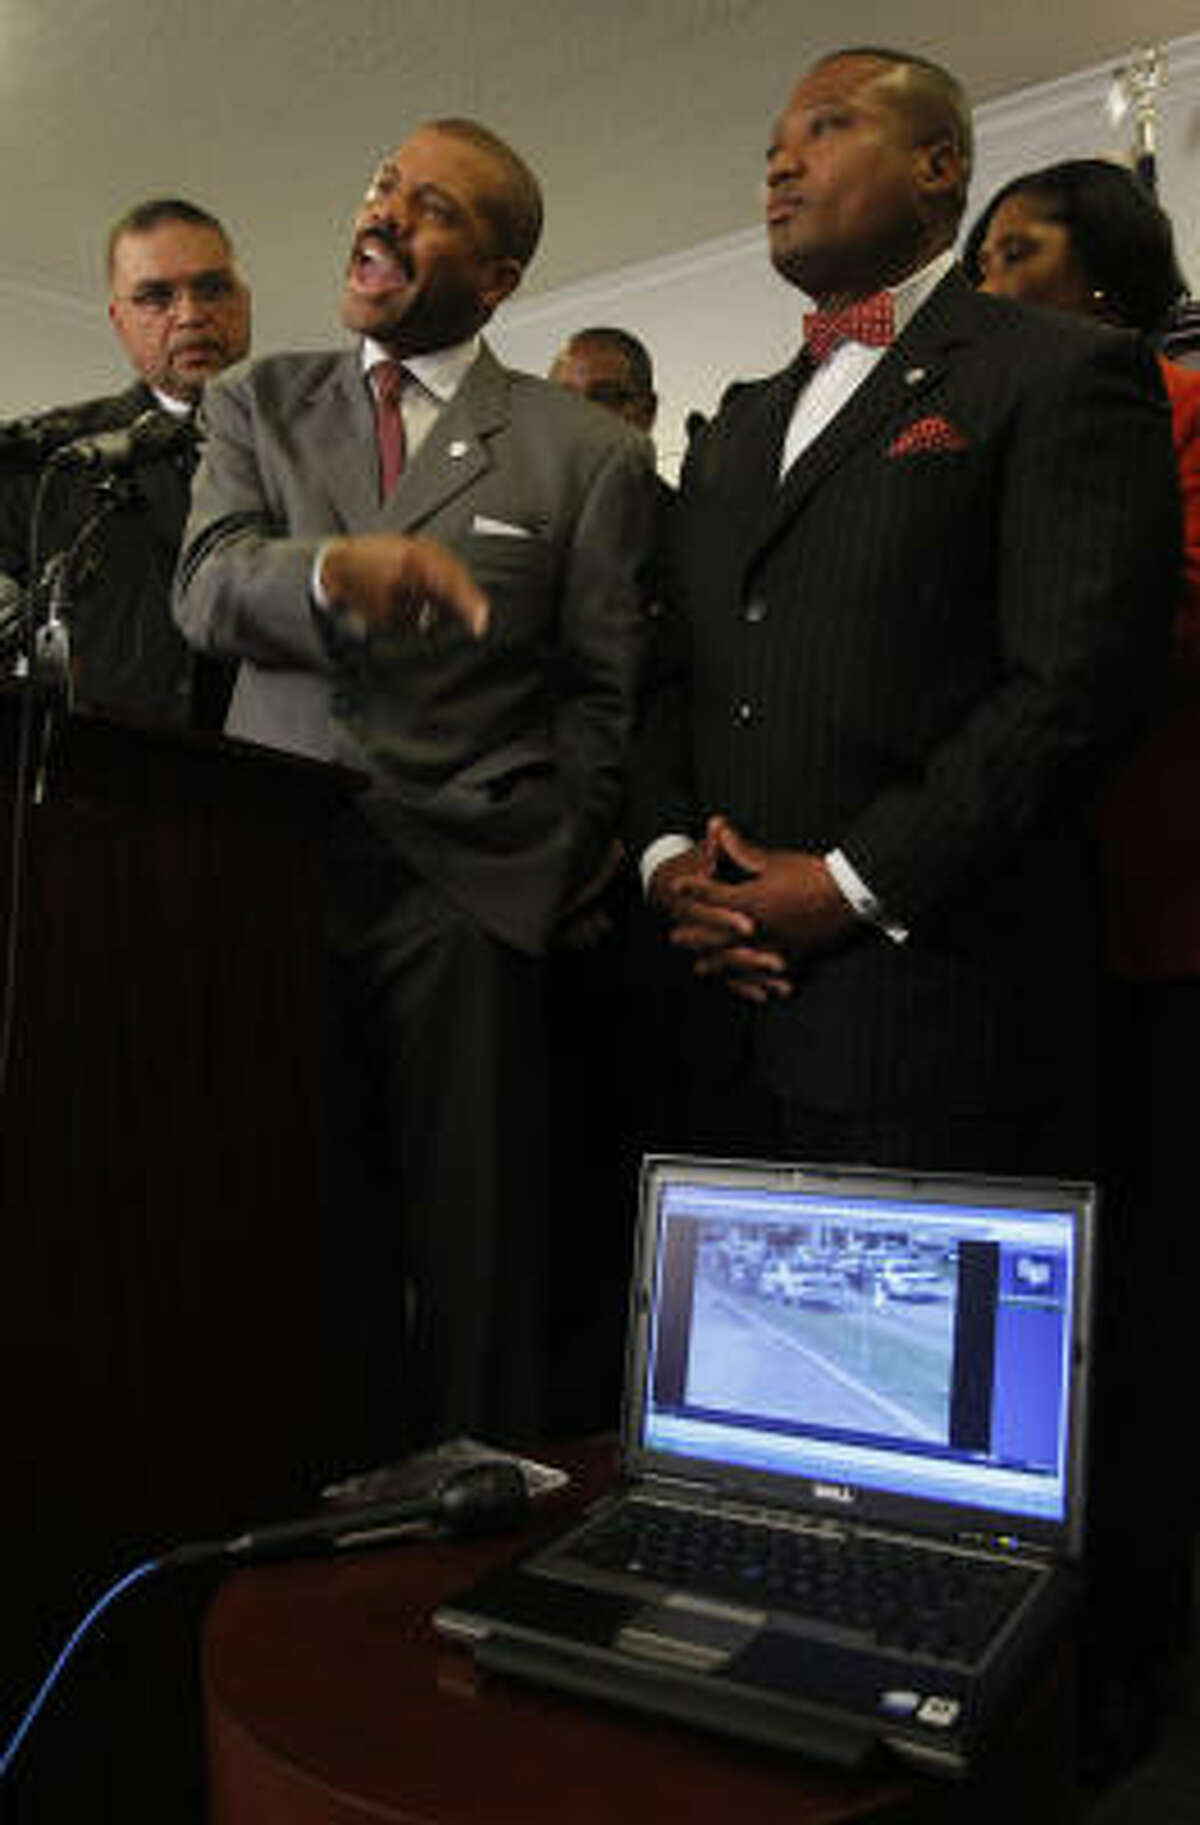 D.Z. Cofield, left, president of the NAACP Houston Branch, State Rep. Borris Miles and Quanell X say they were shocked by the actions depicted on the videotape.